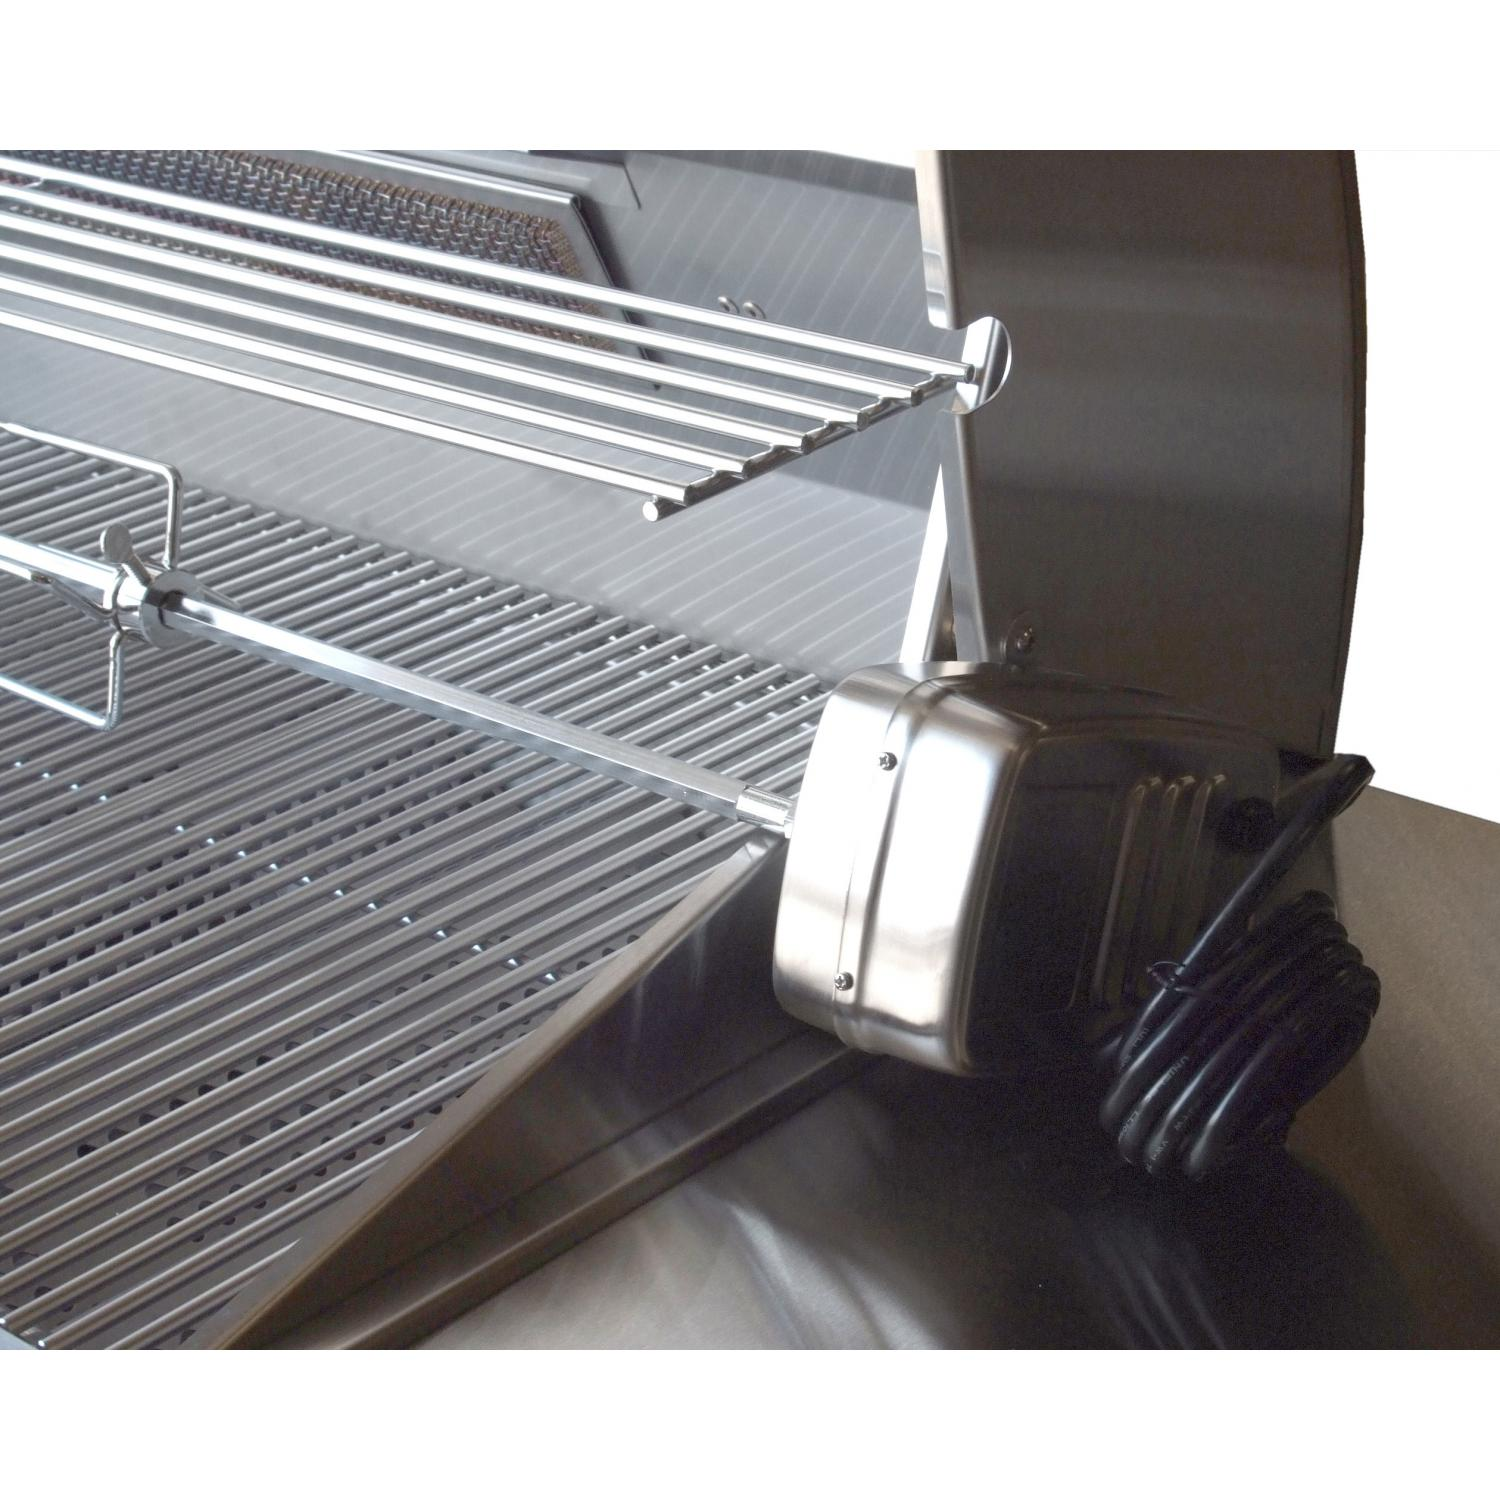 Picture of American Outdoor Grill Warming Rack For AOG 24 Inch Grills